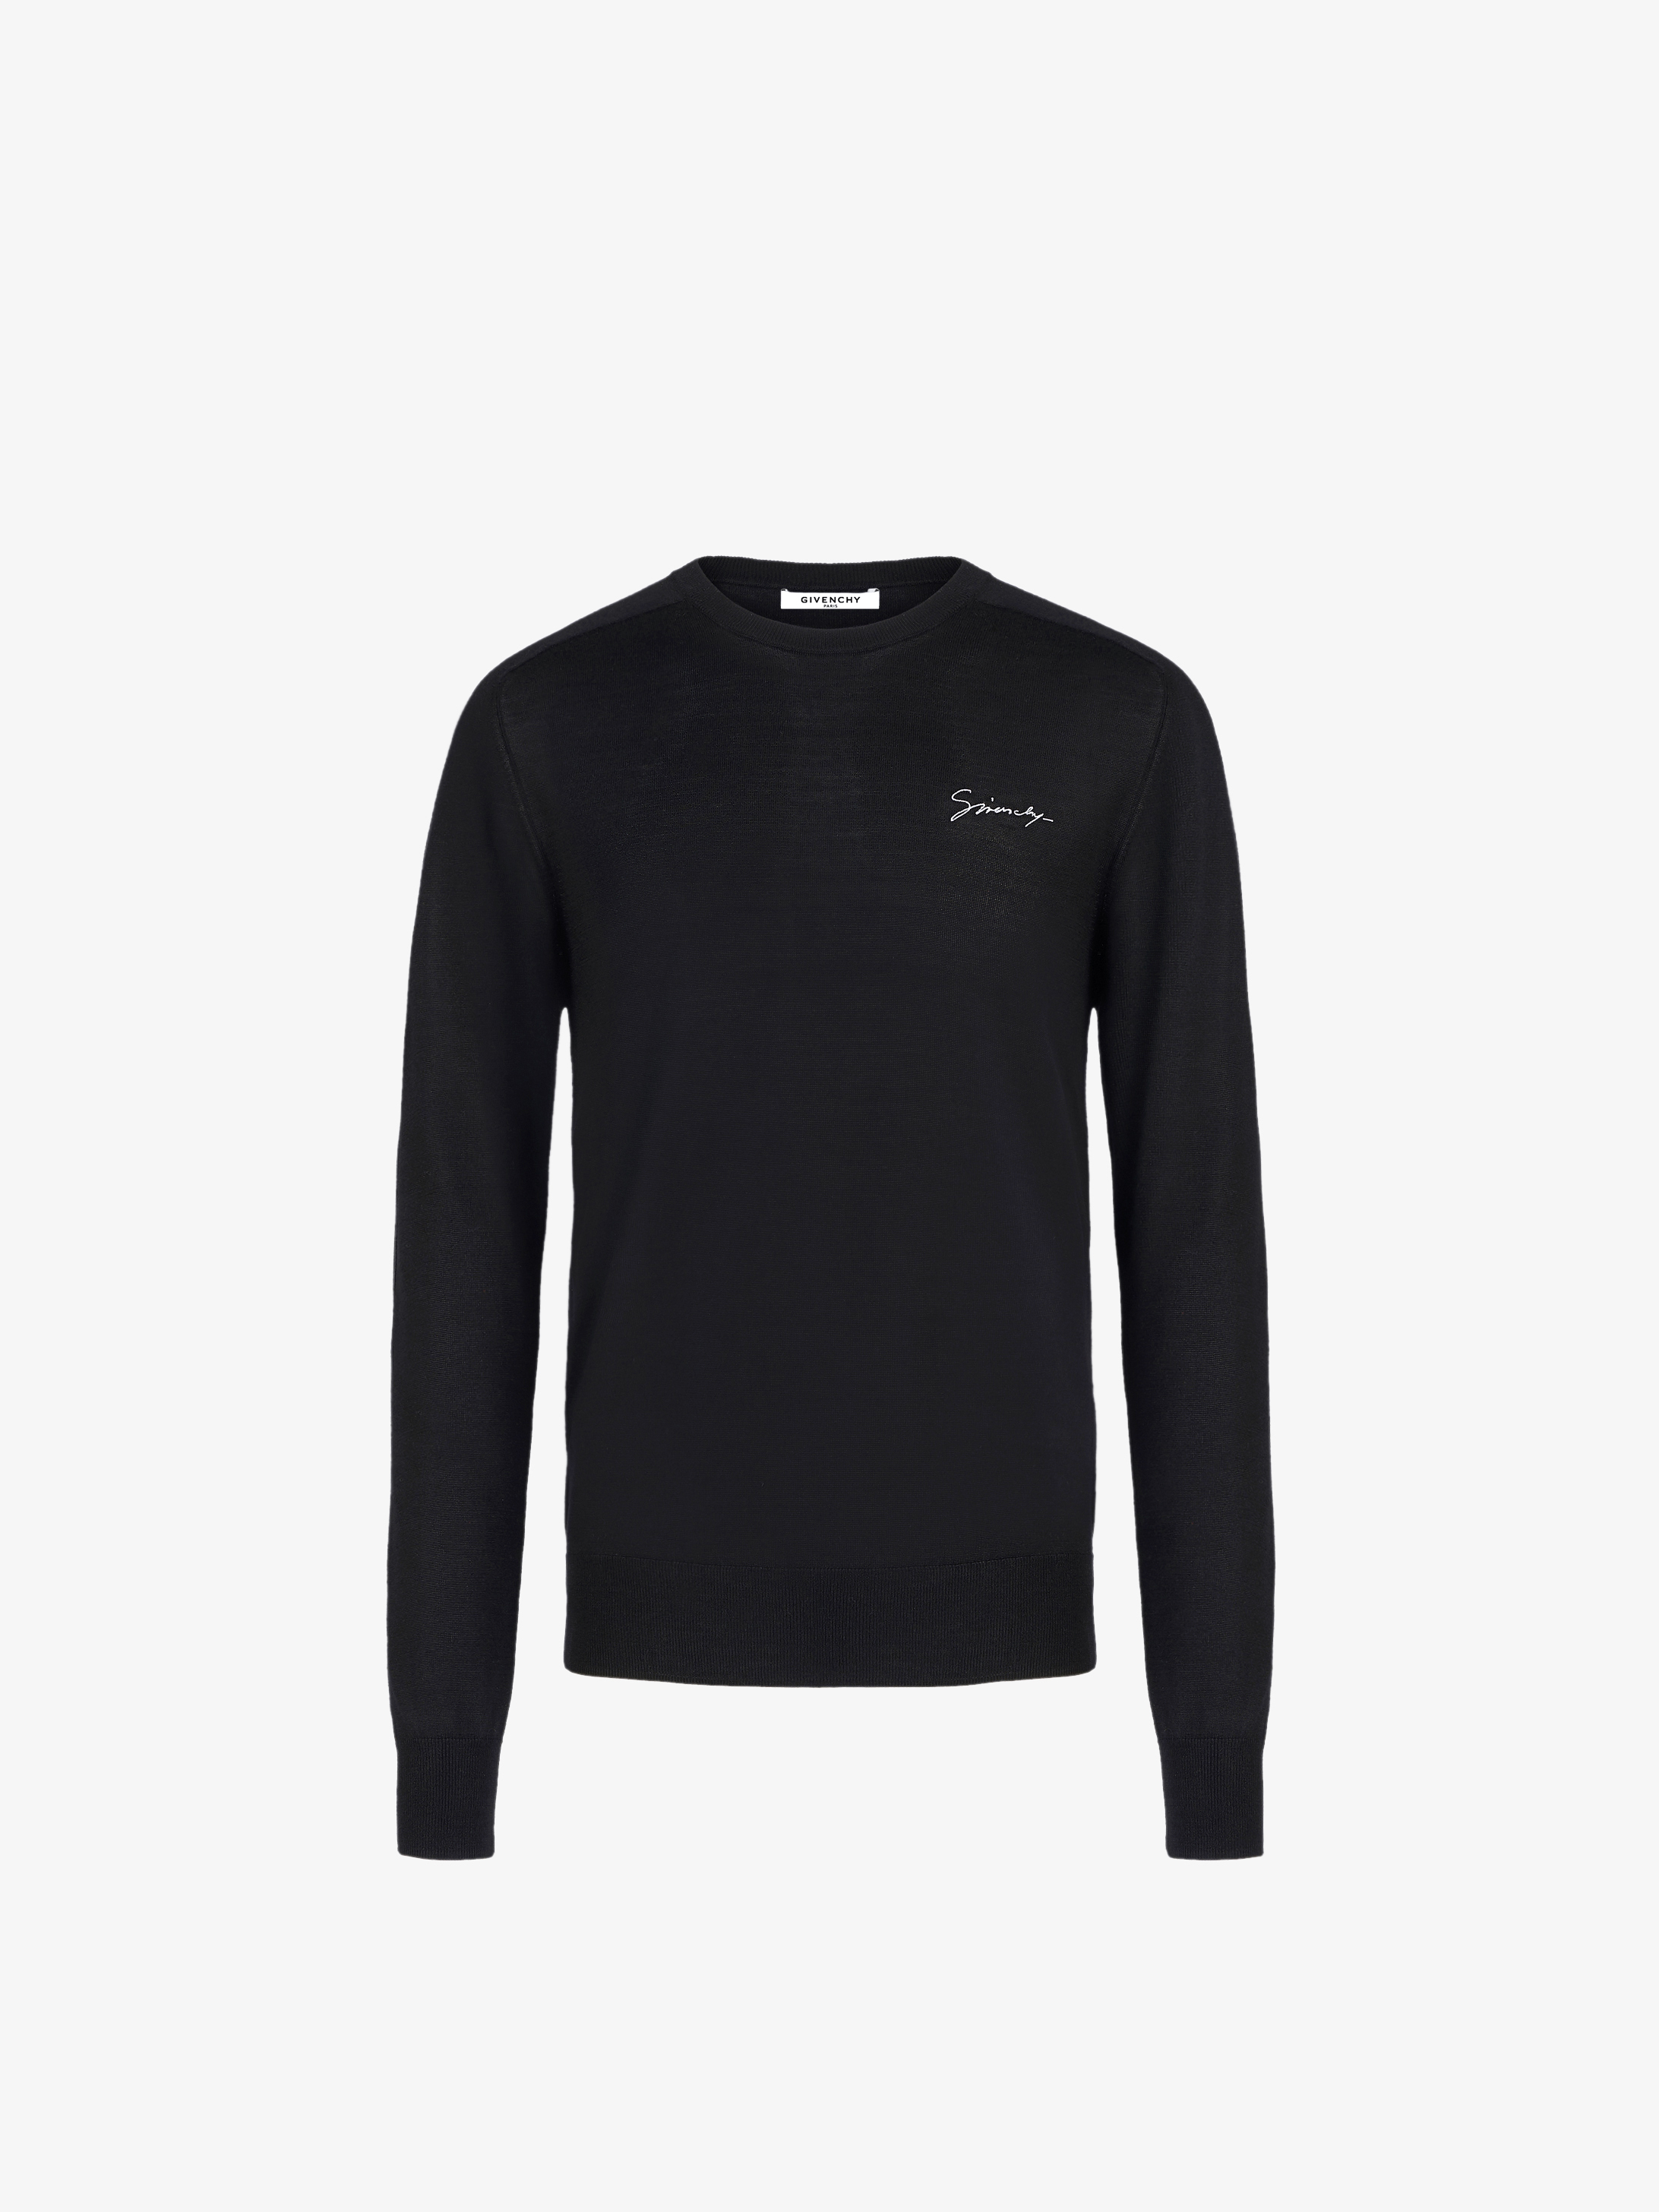 GIVENCHY embroidered sweater in silk